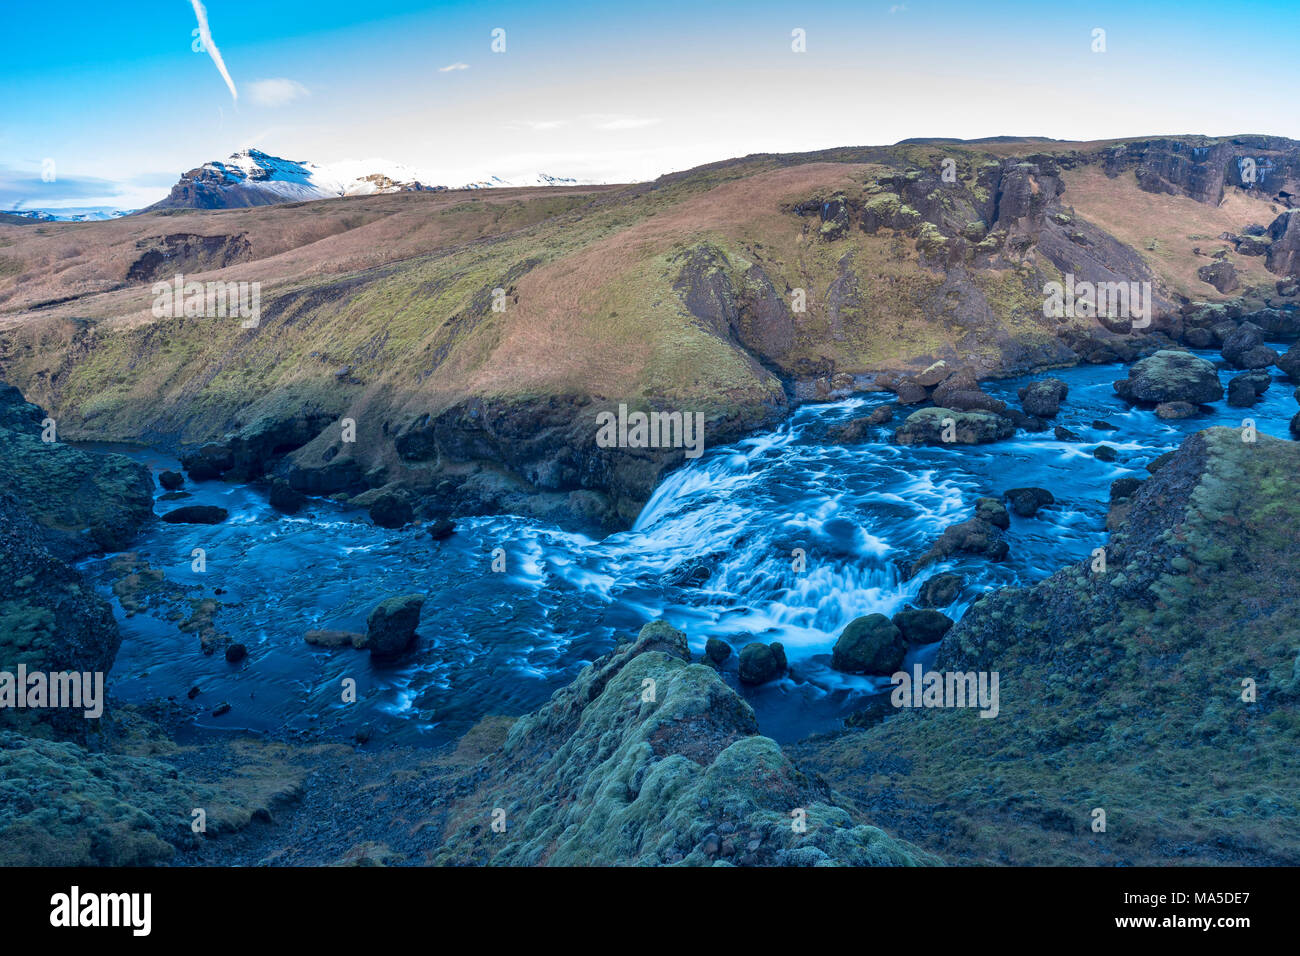 Europe, Northern Europe, Iceland, Skógar, view to the Fimmvörduhals hiking trail in the Icelandic highlands - Stock Image